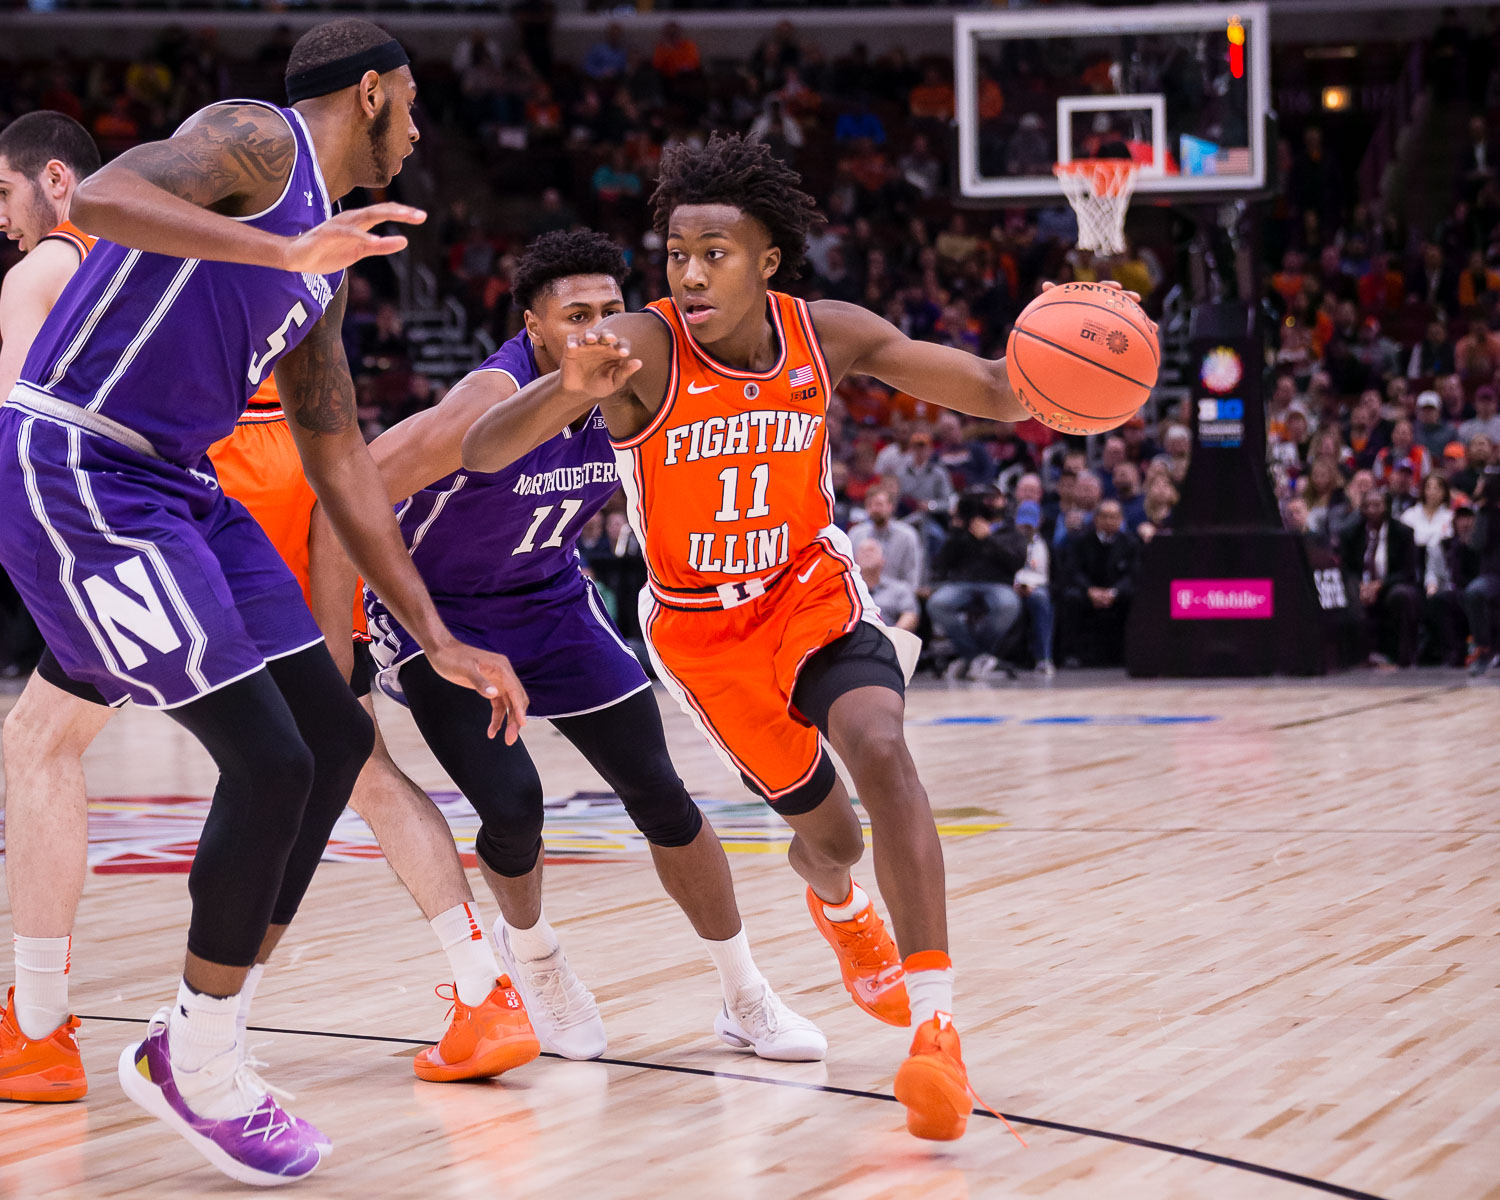 Illinois+guard+Ayo+Dosunmu+dribbles+around+a+defender+during+the+game+against+Northwestern+in+the+first+round+of+the+Big+Ten+Tournament+at+the+United+Center+on+Wednesday.